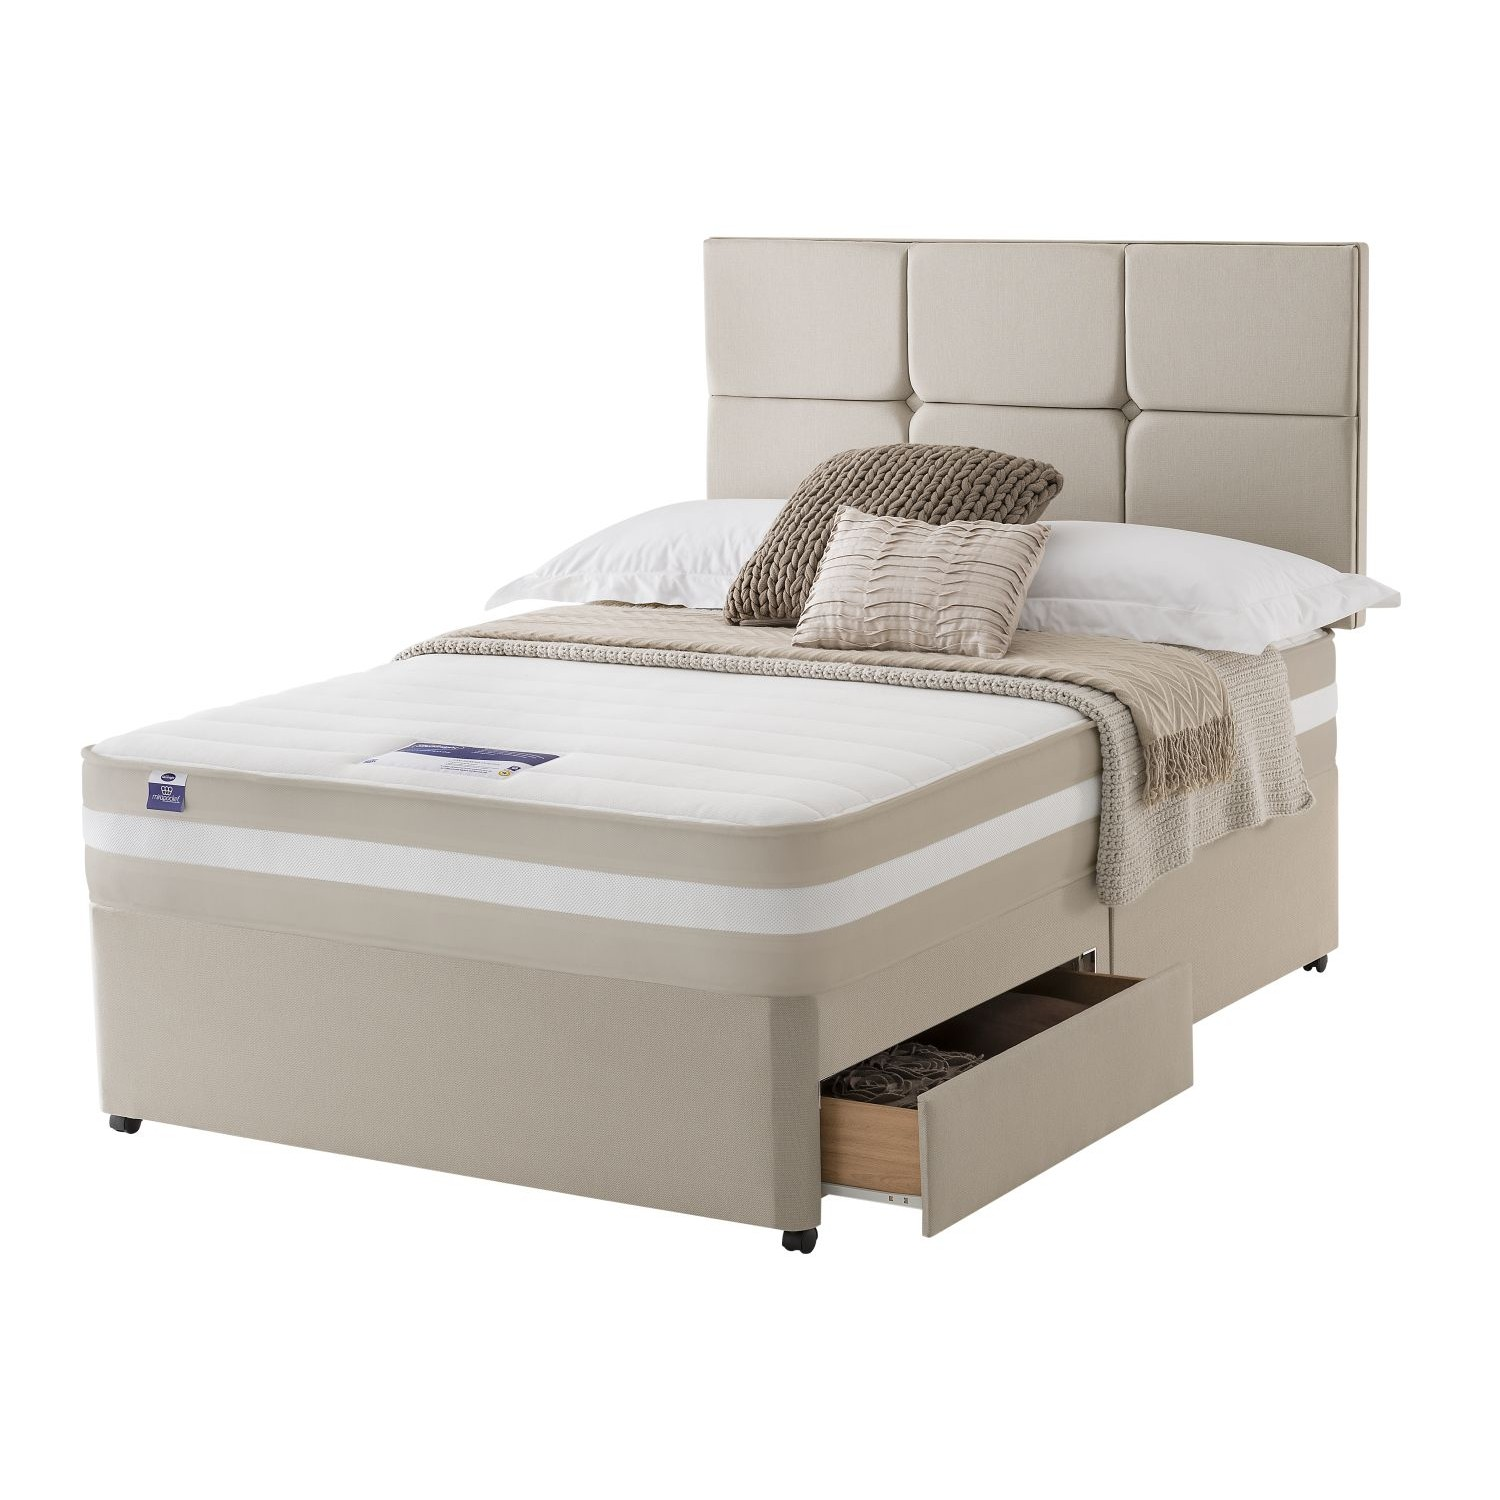 Silentnight bari platform top 2 drawer divan set double le for Silentnight divan